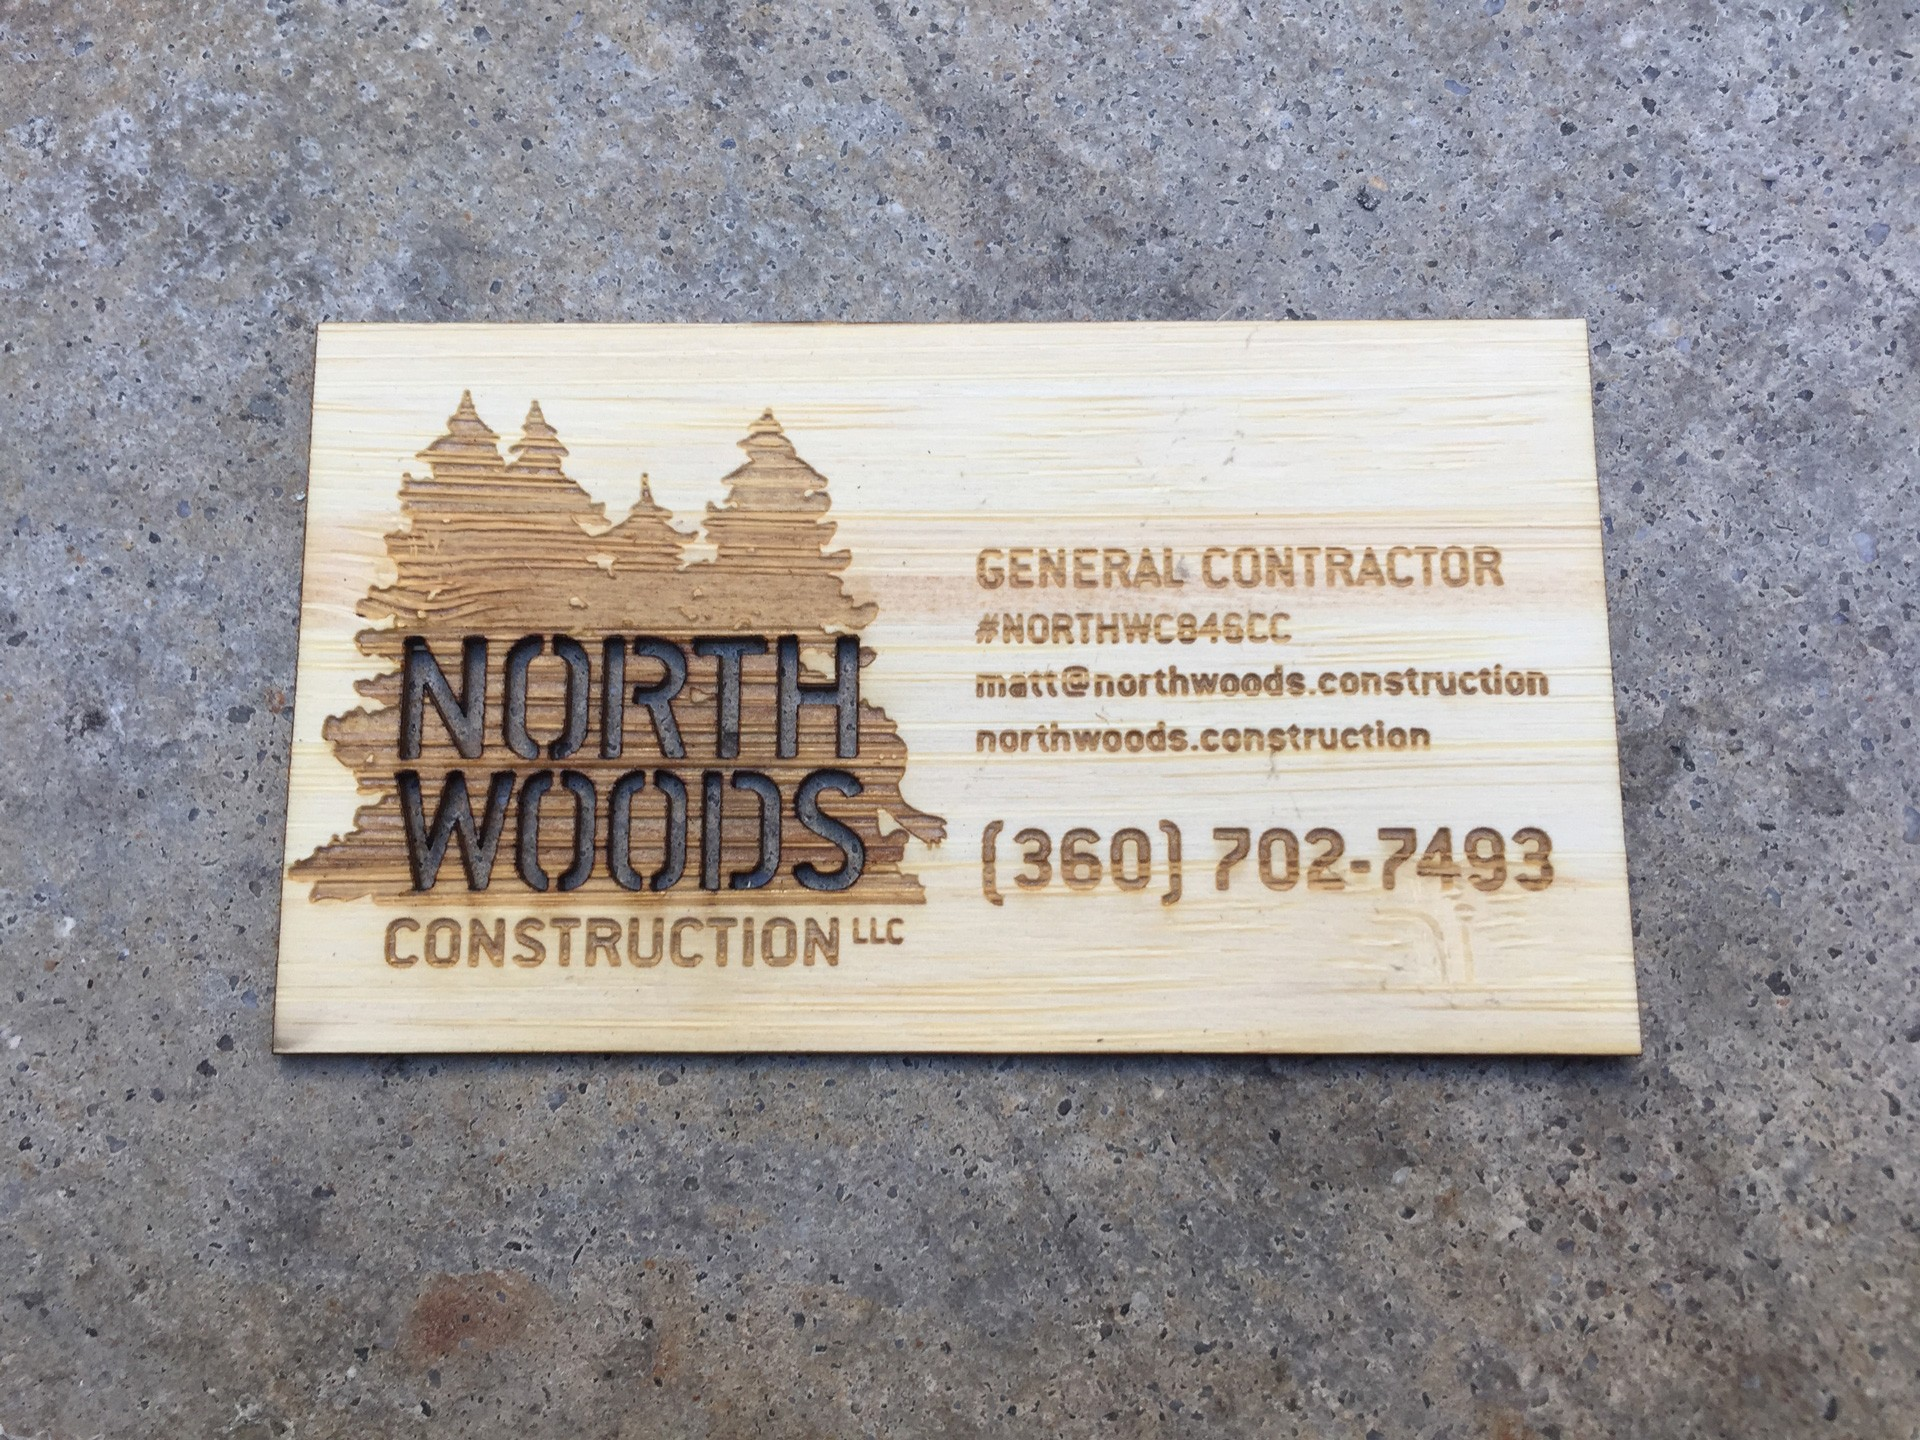 Unique General Contractor Business Card Image Ideas